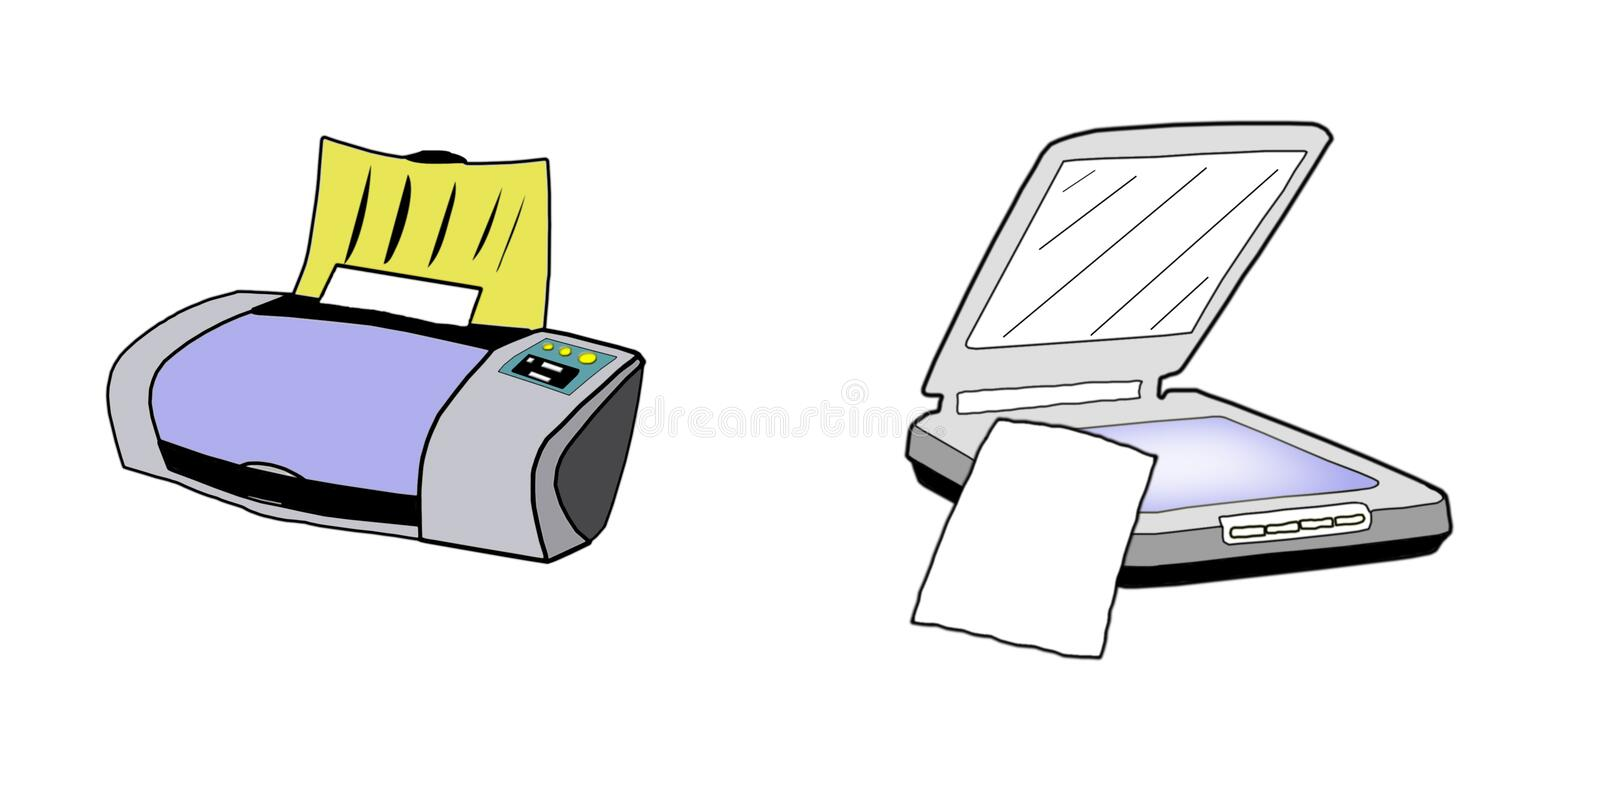 Printer and Scanner illustration, isolated royalty free stock photos